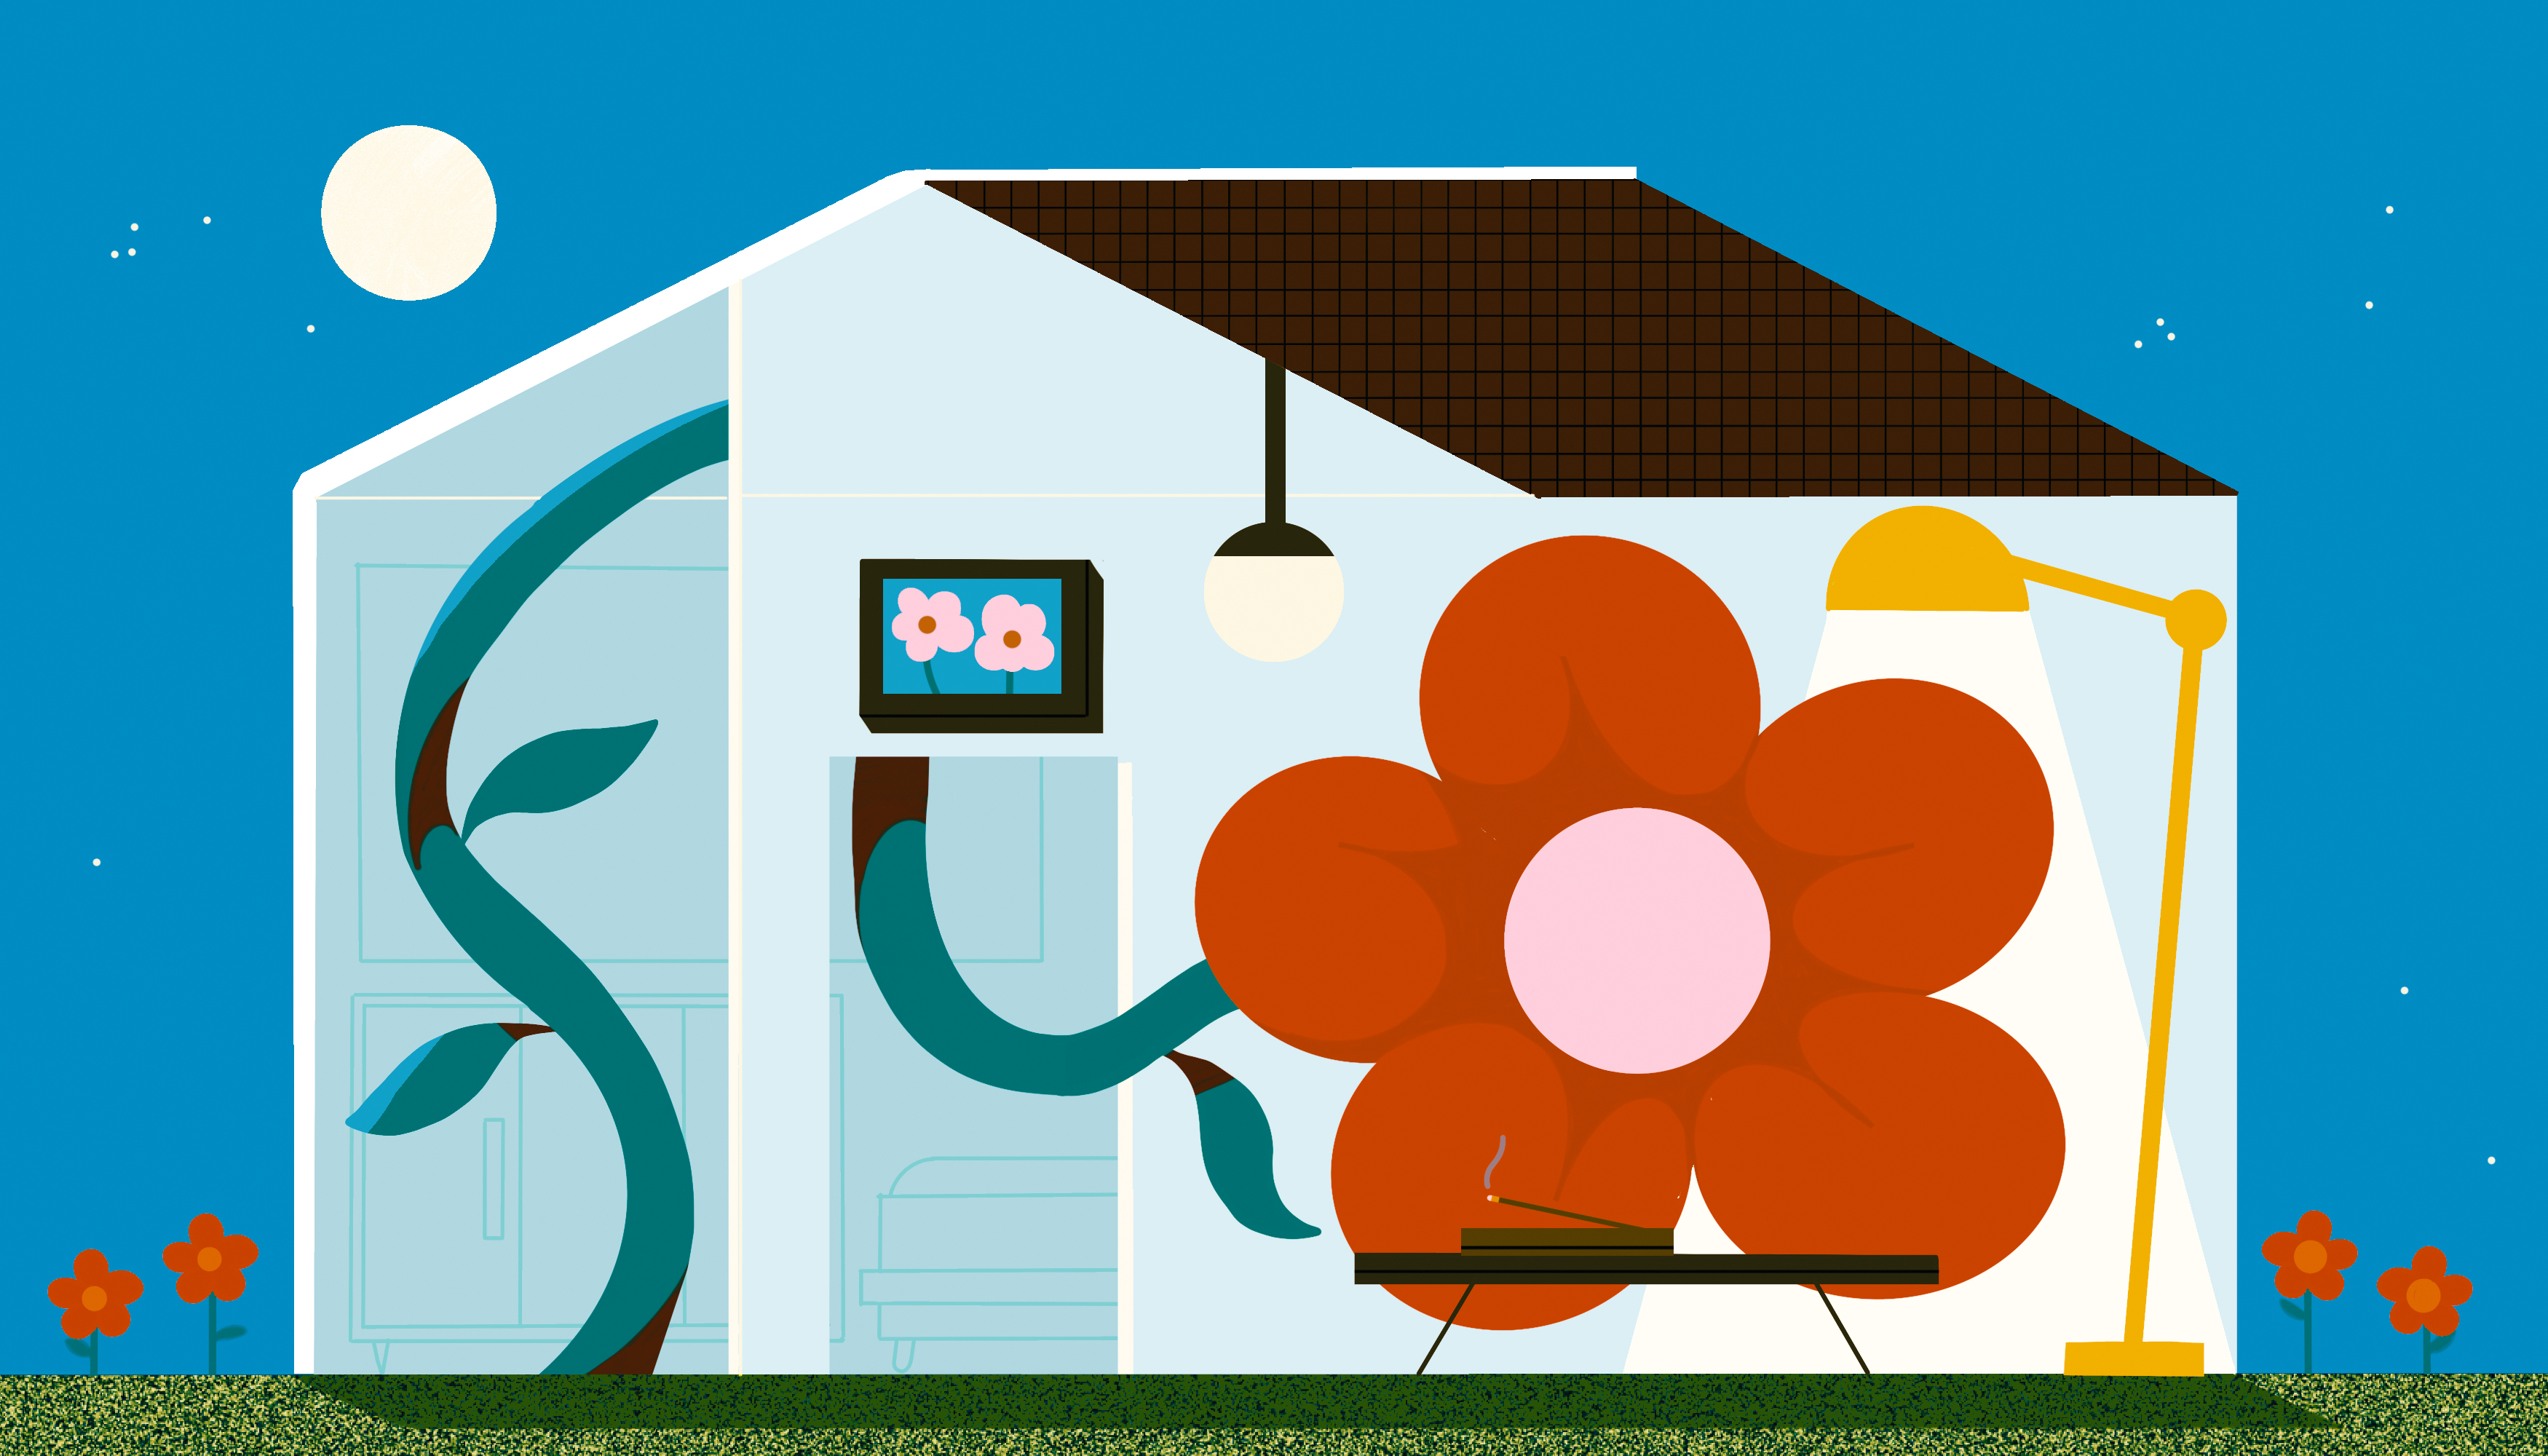 A single blooming flower extends its stem throughout a house to find light. Outside the sun has set and a full moon shines on the home. Illustration.